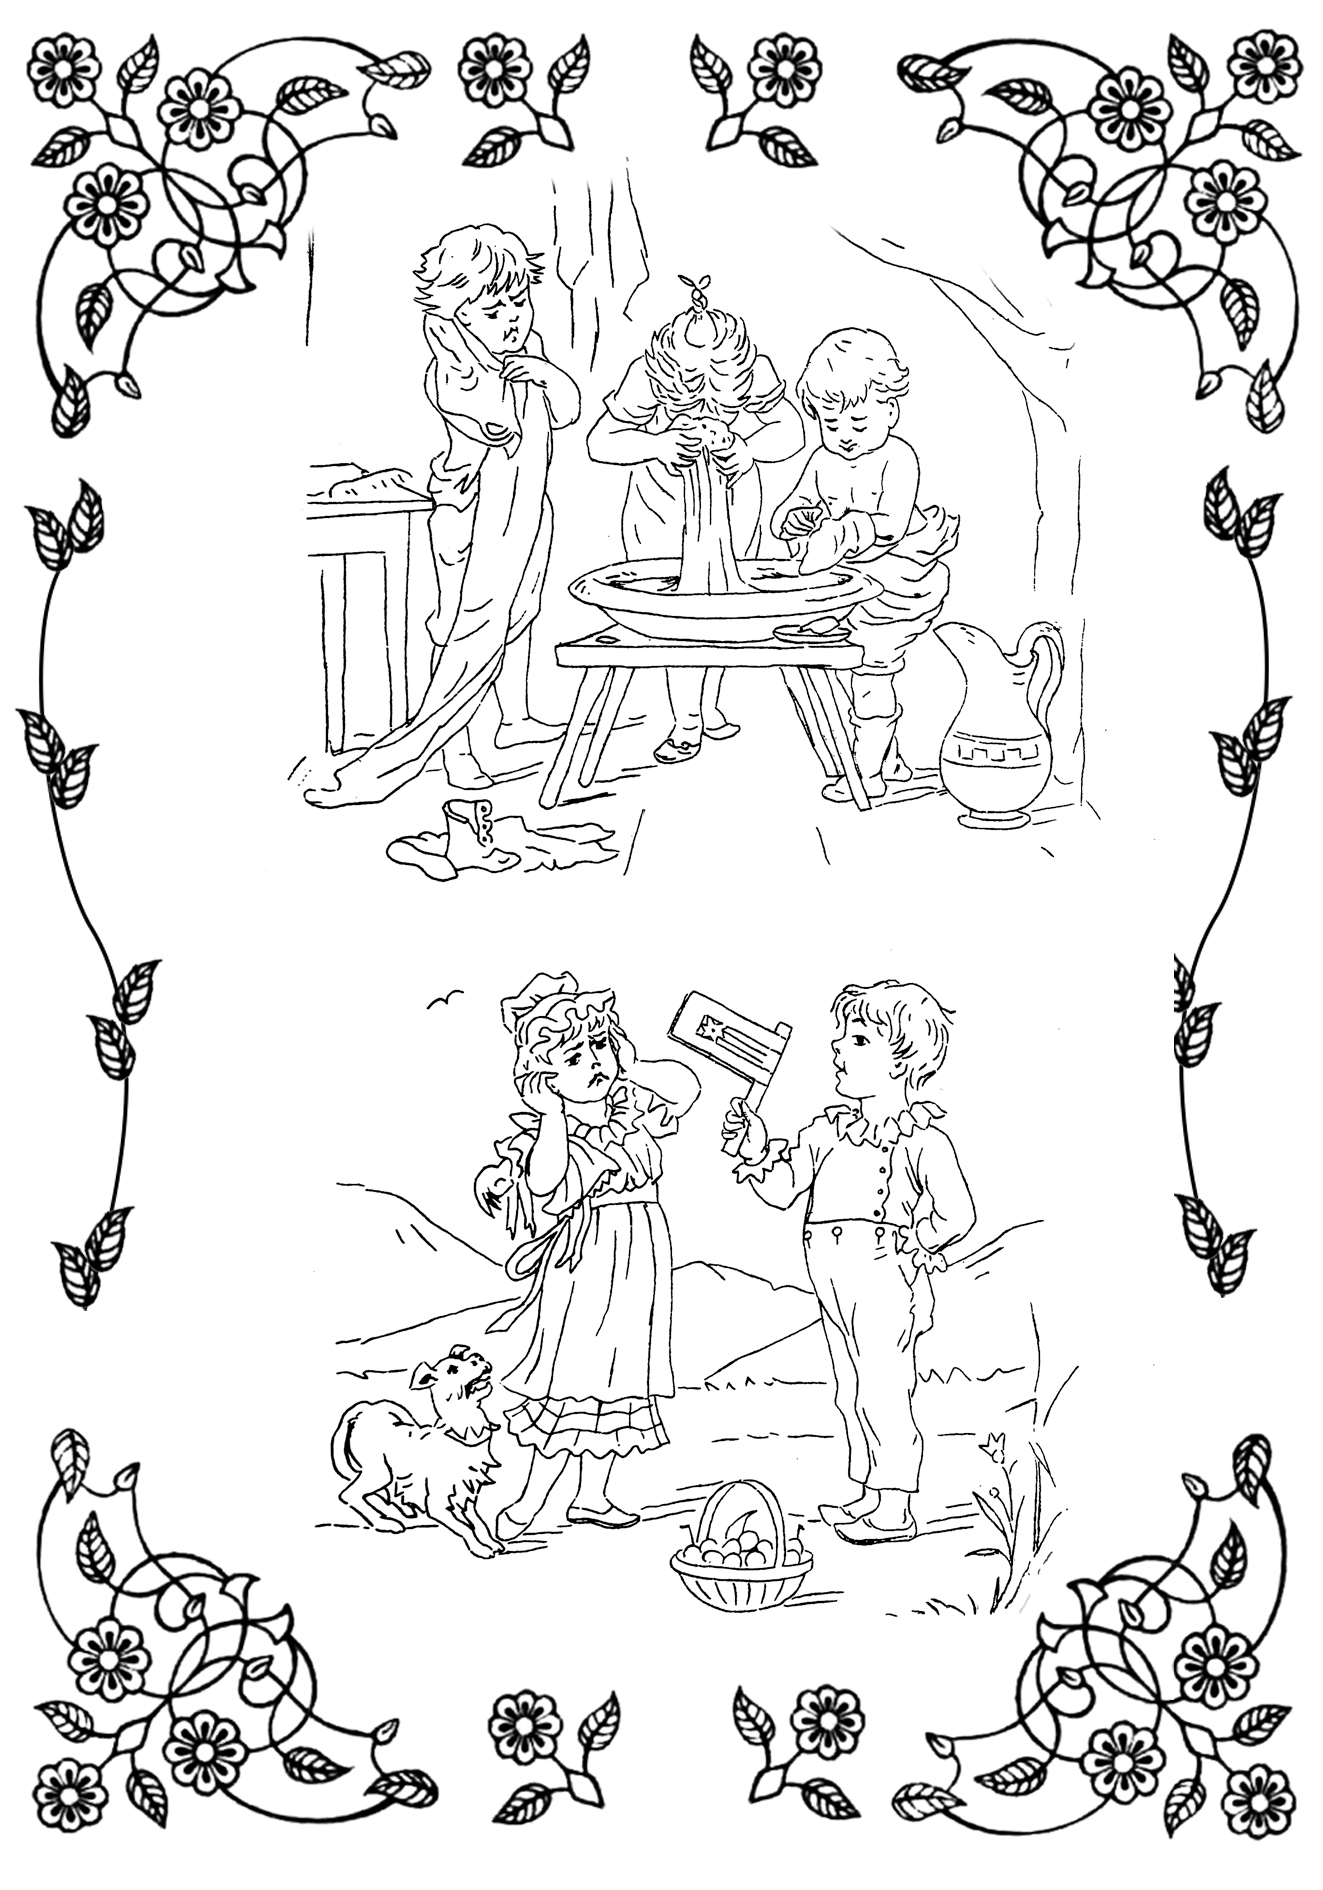 victorian pictures to colour victorian fashions coloring book dover publications to colour victorian pictures